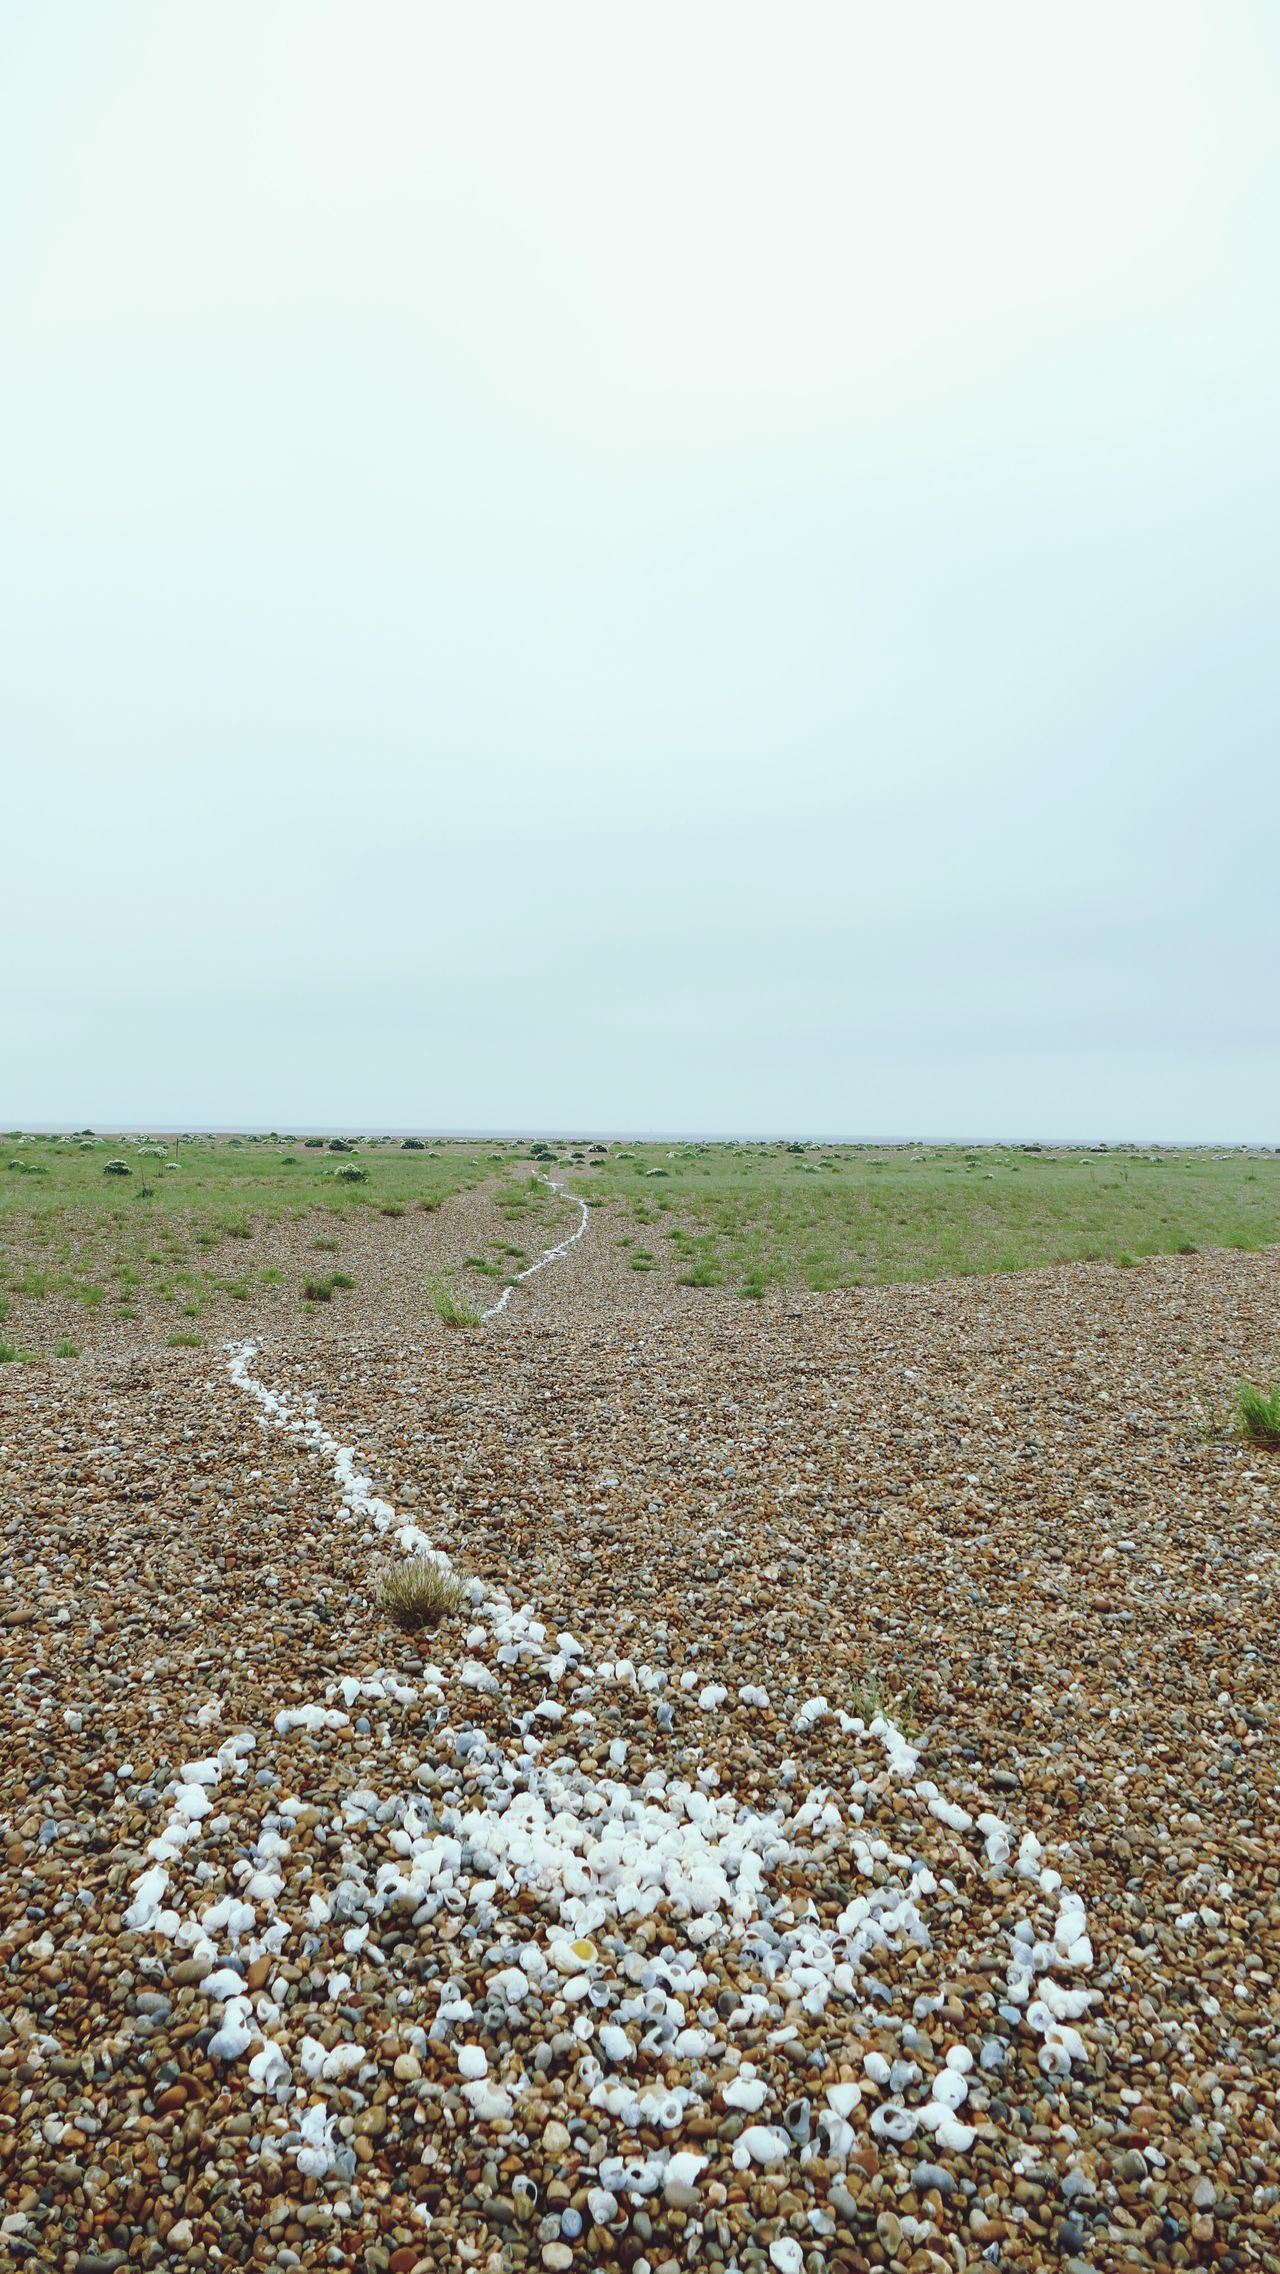 'Target' Art Beach Shingle Street Shingle Pebbles Stones Seaside Shore Trail Colour LINE -- B